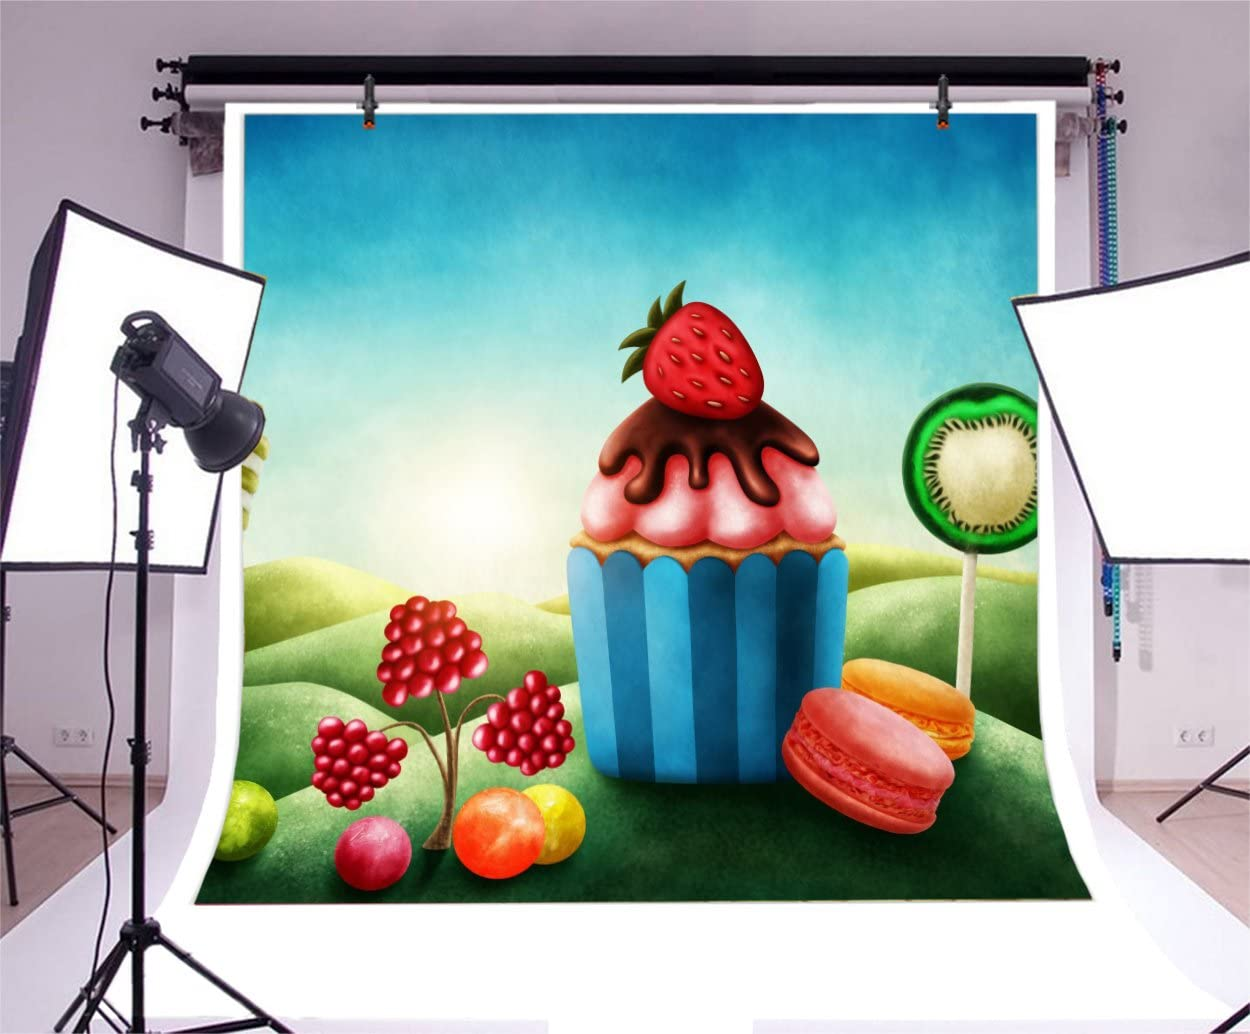 5x5FT Vinyl Photography Backdrop,Pale Pink,Vertical Borders Figures Photo Background for Photo Booth Studio Props